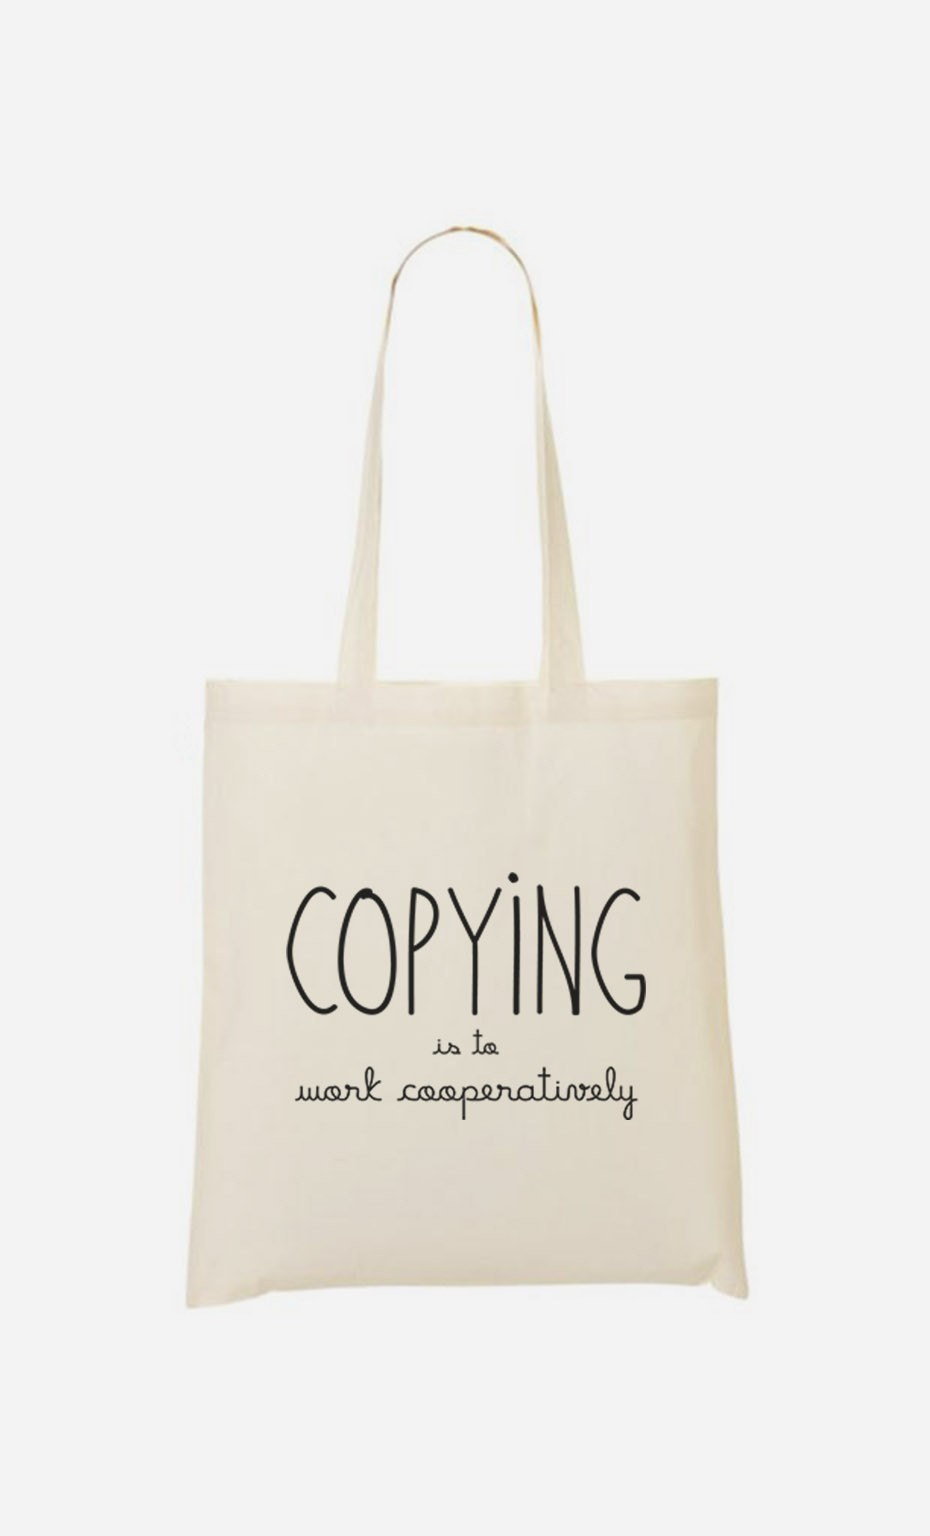 Tote Bag Copying is to Work Cooperatively